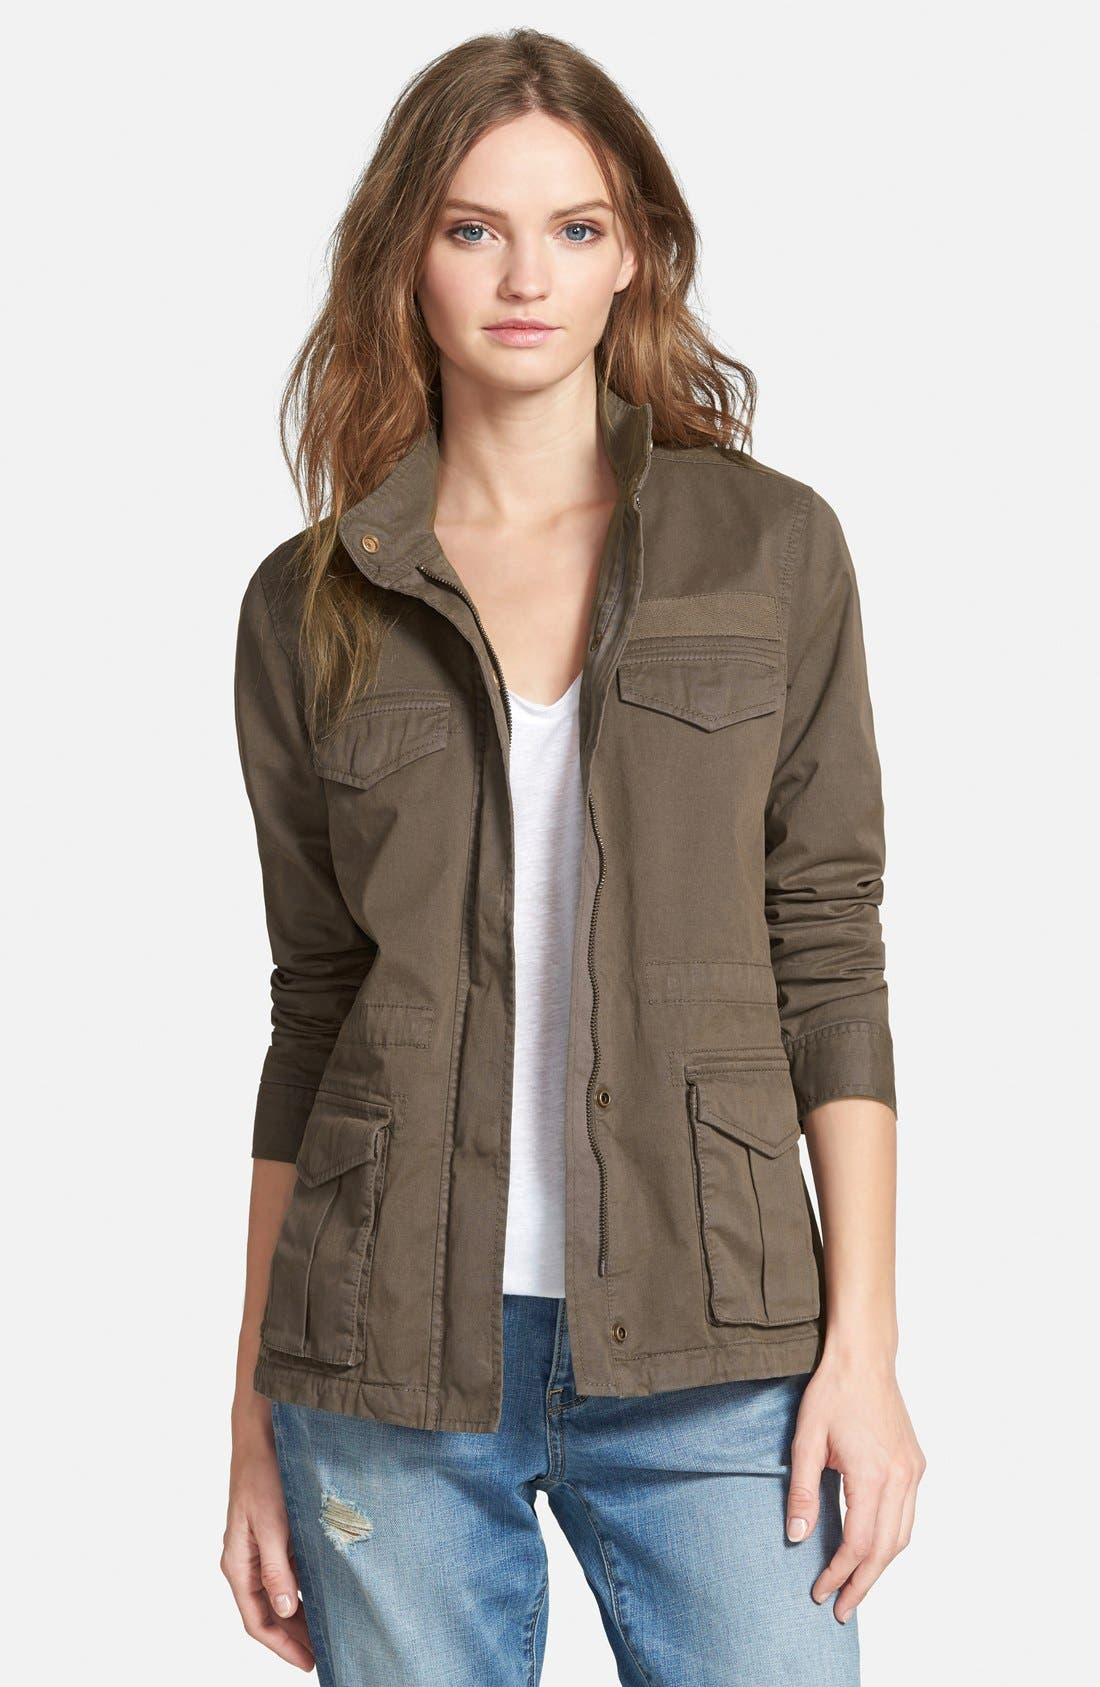 Alternate Image 1 Selected - Hinge Fatigue Jacket